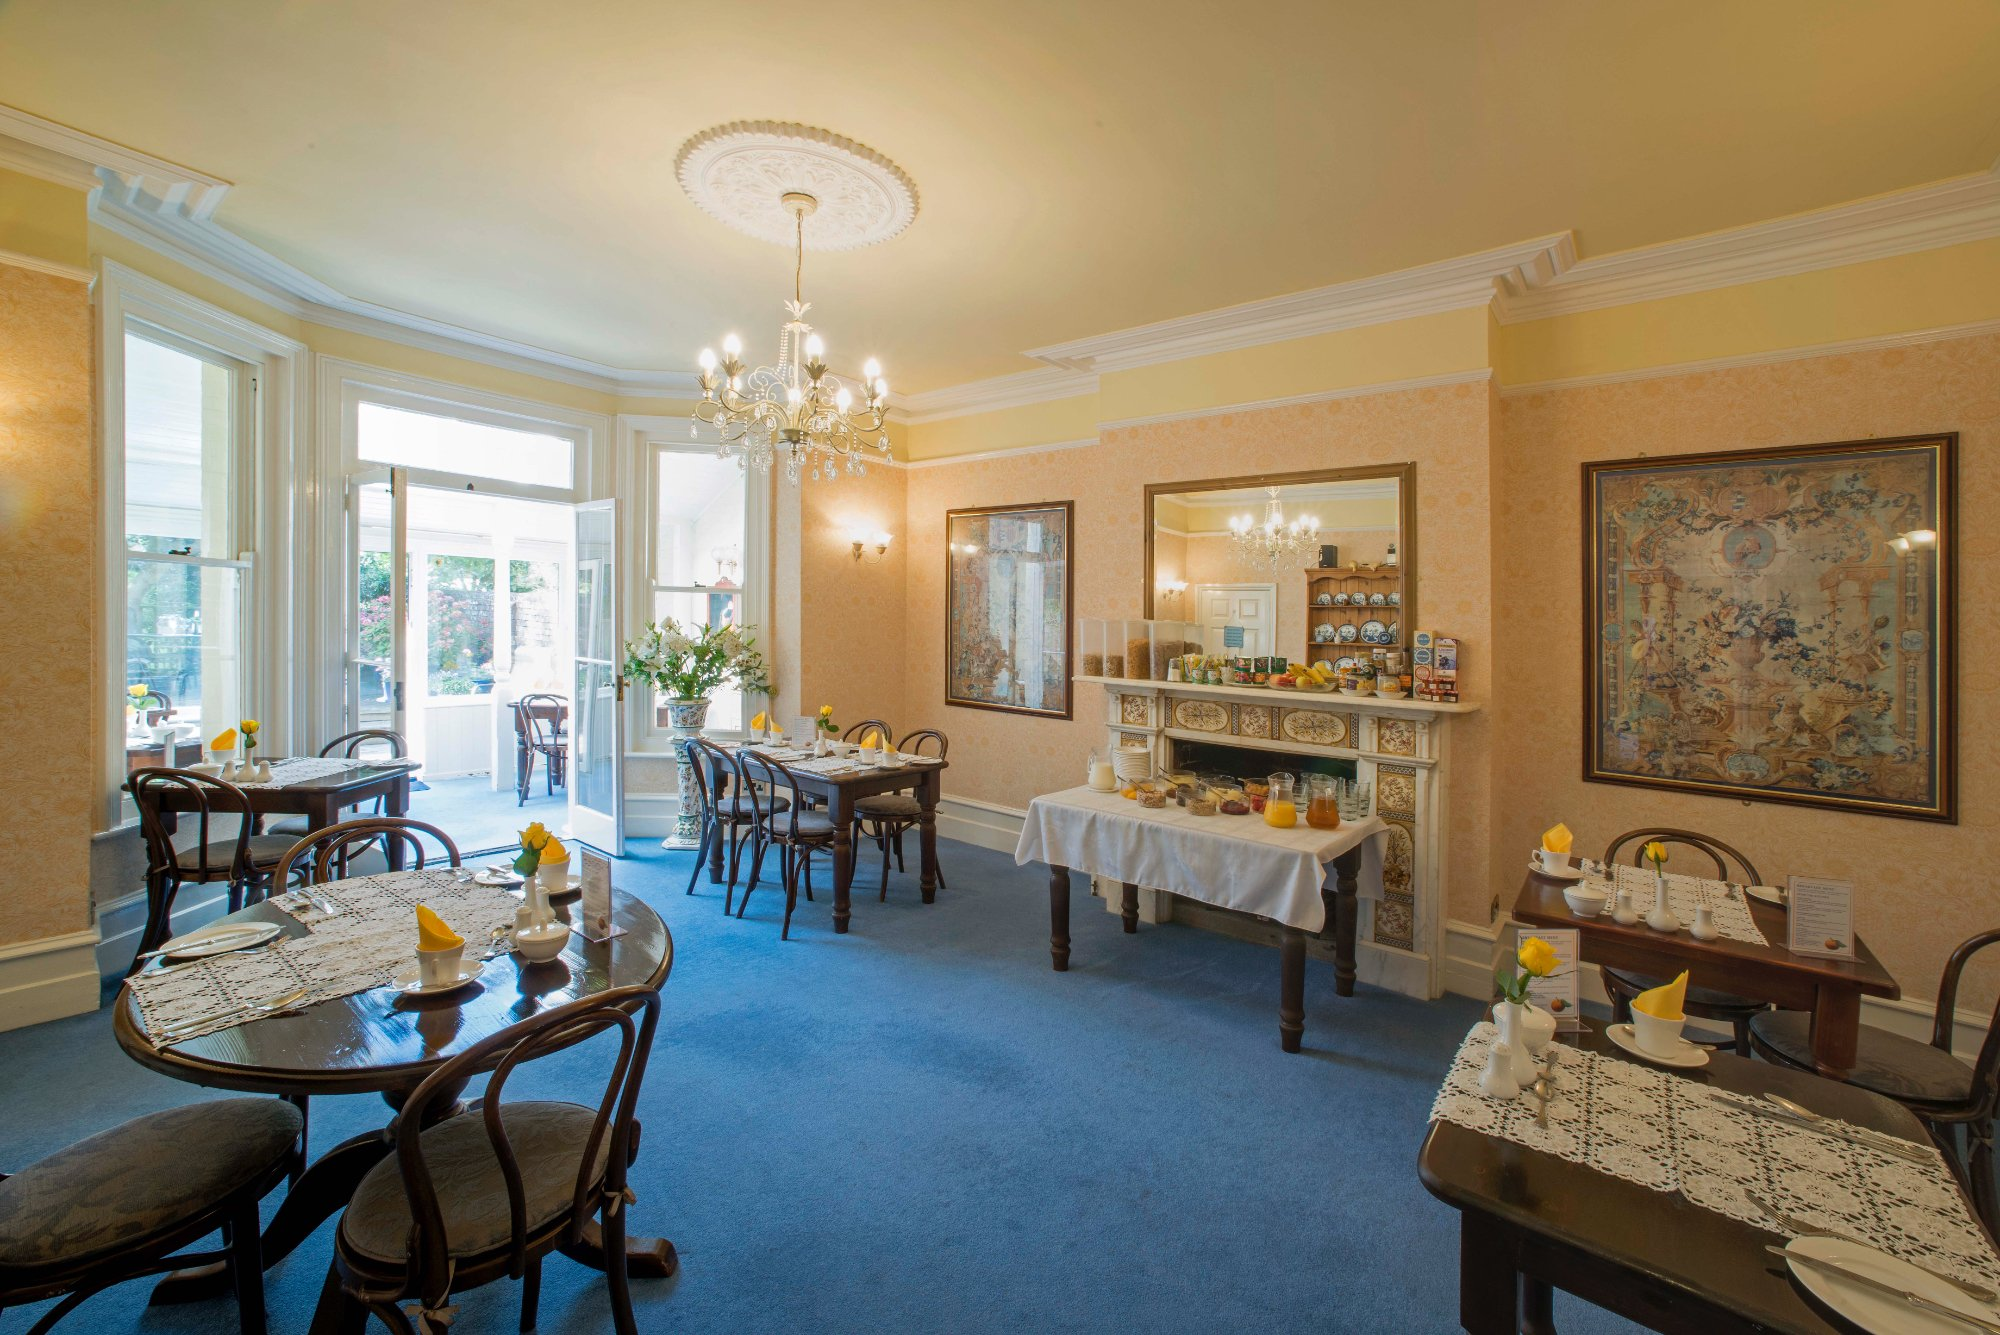 Yorke Lodge Bed and Breakfast